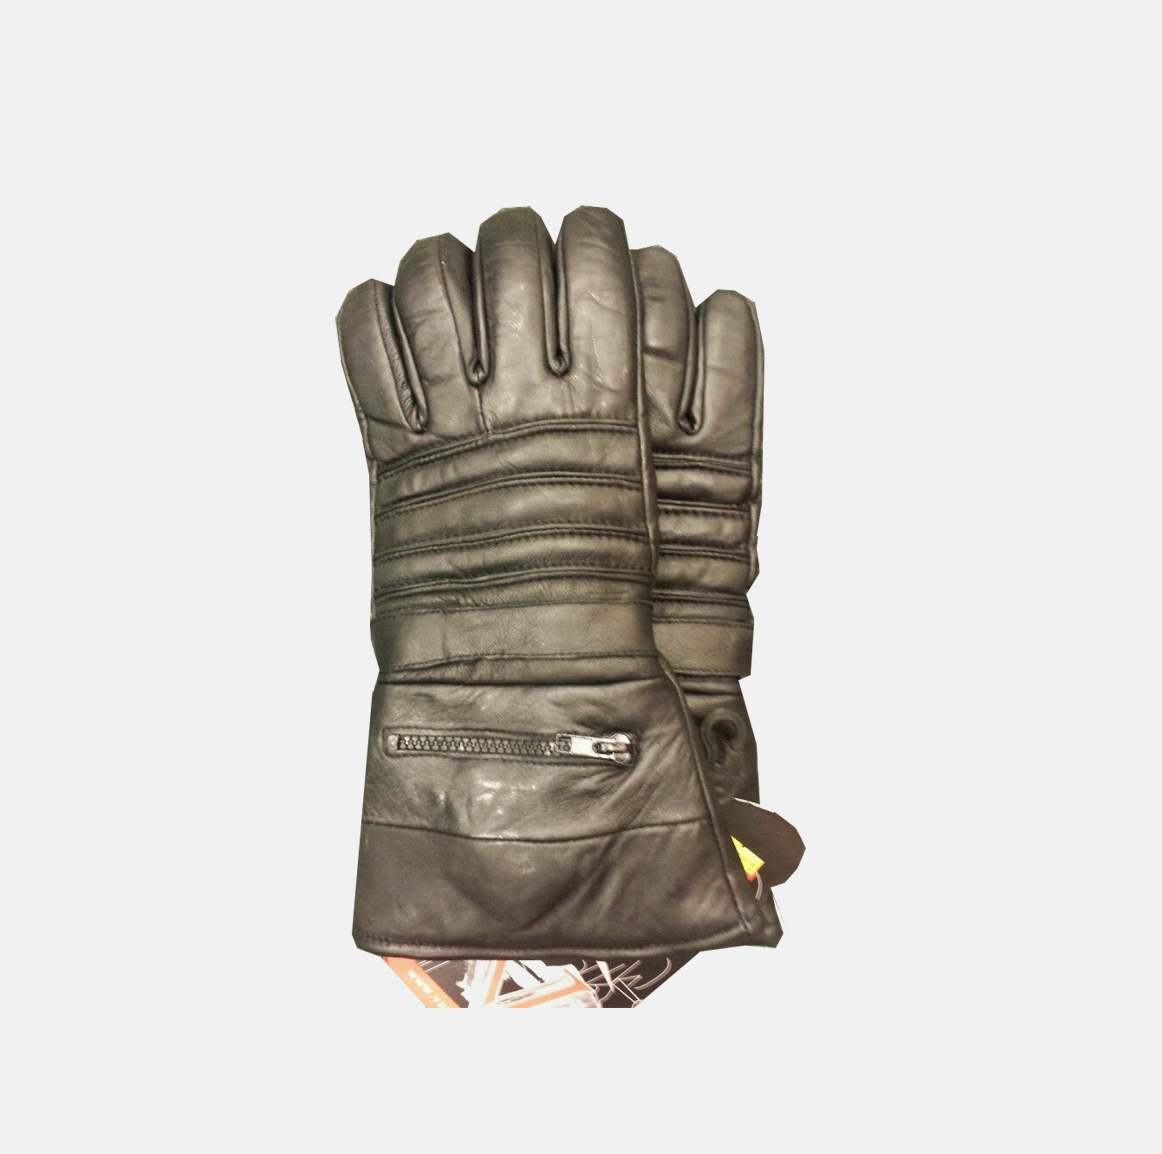 Rain gloves motorcycle rain gloves insultaed